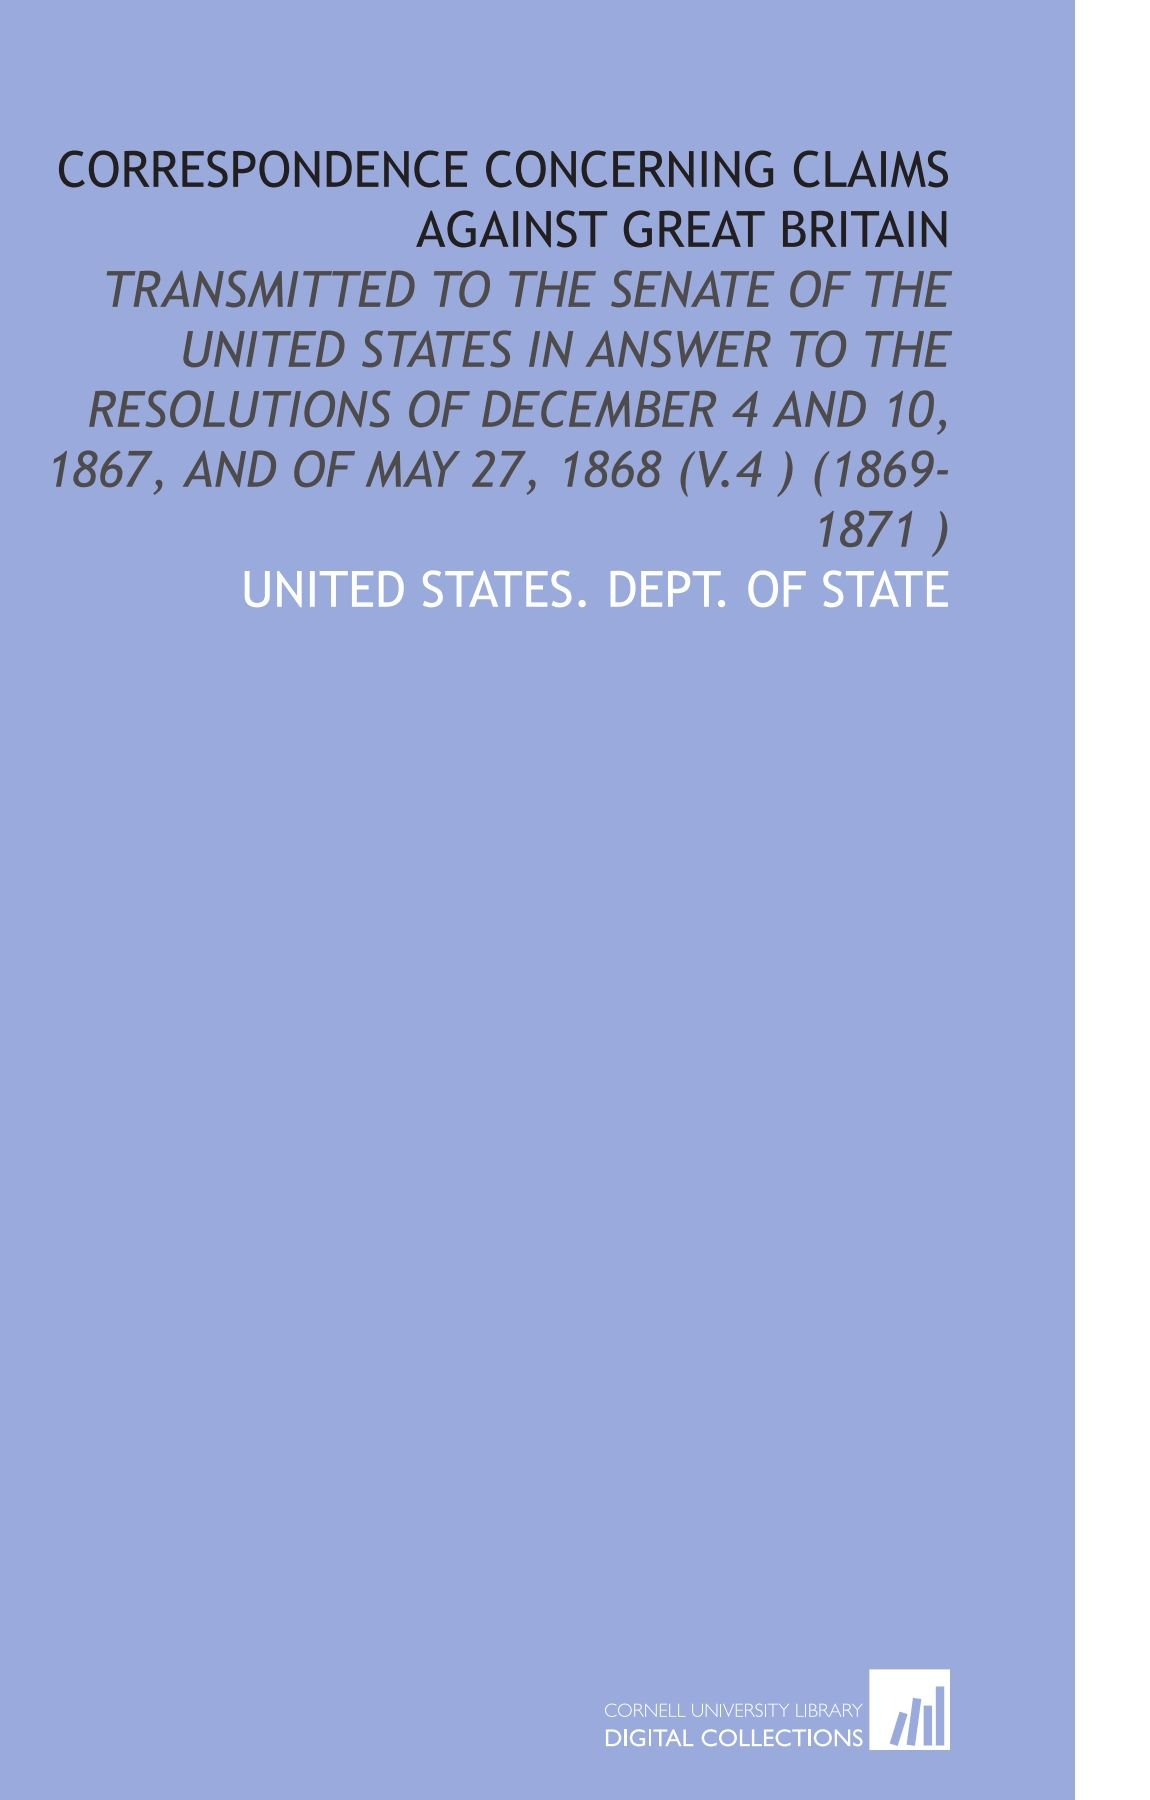 Correspondence Concerning Claims Against Great Britain: Transmitted to the Senate of the United States in Answer to the Resolutions of December 4 and 10, 1867, and of May 27, 1868 (V.4) (1869-1871) PDF